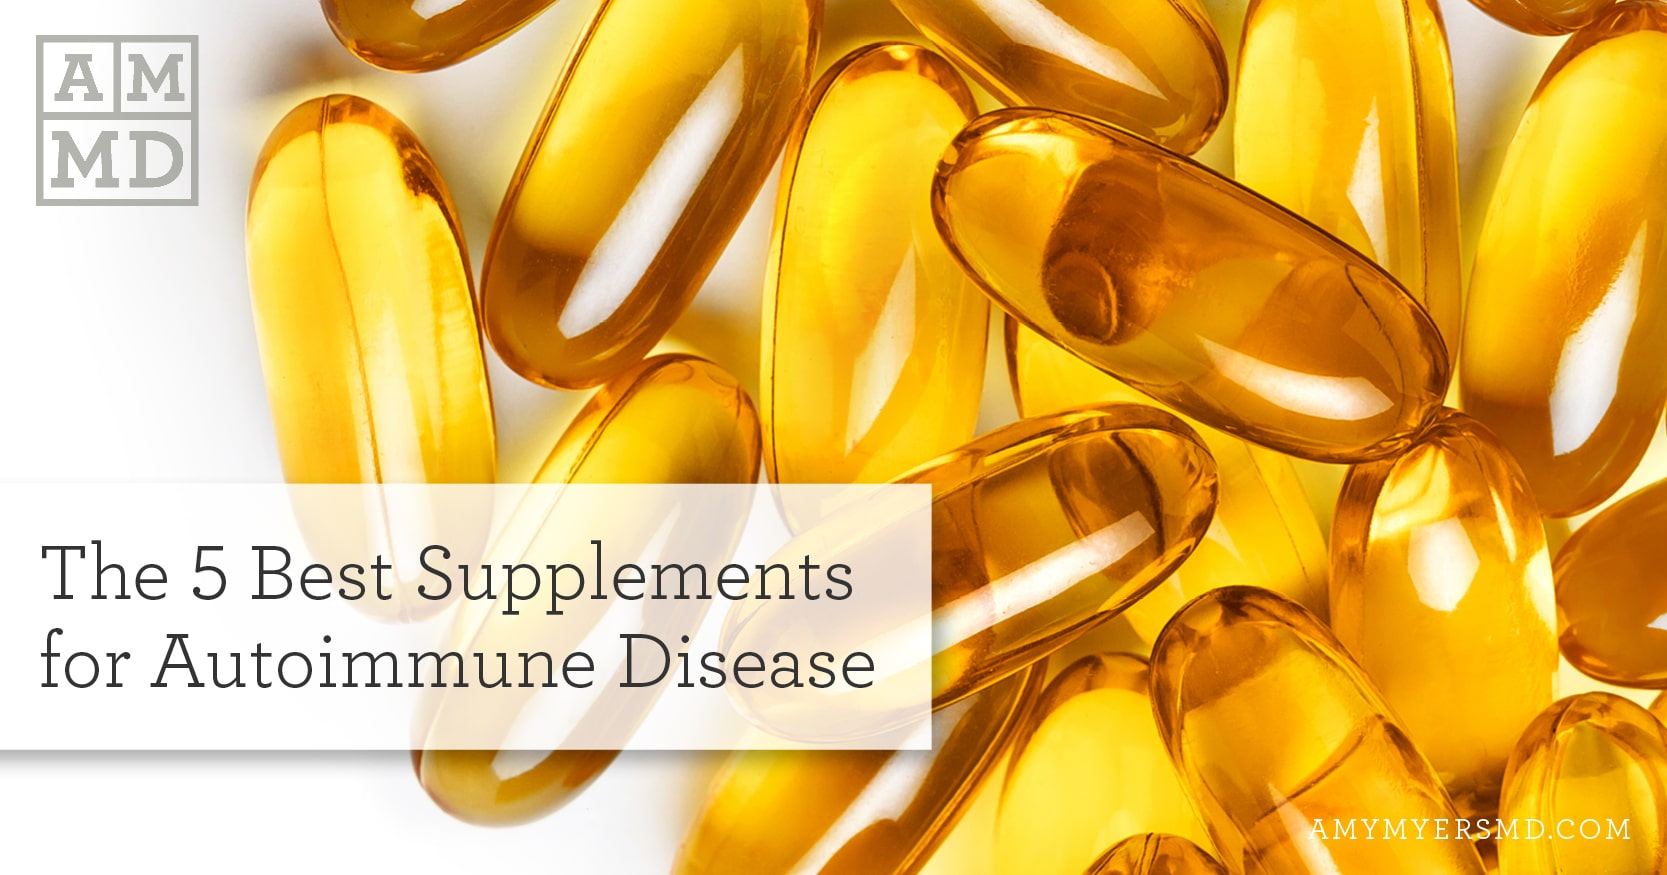 The 5 Best Supplements for Autoimmune Disease - Amy Myers MD